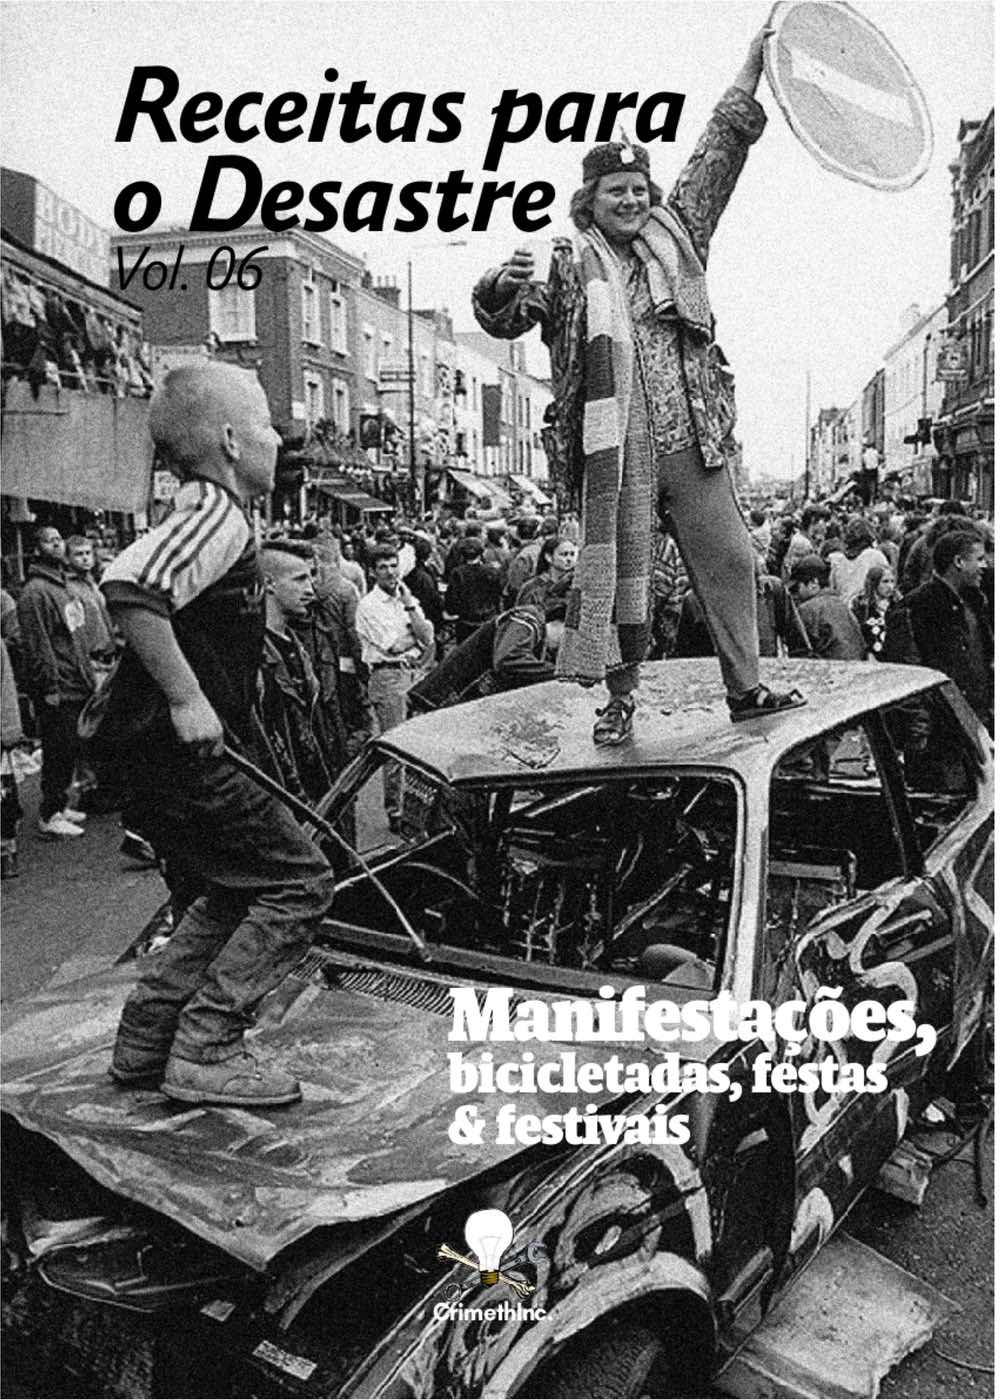 Photo of 'Receitas para o Desastre Vol. 06 (Portugues Brasileiro)' front cover